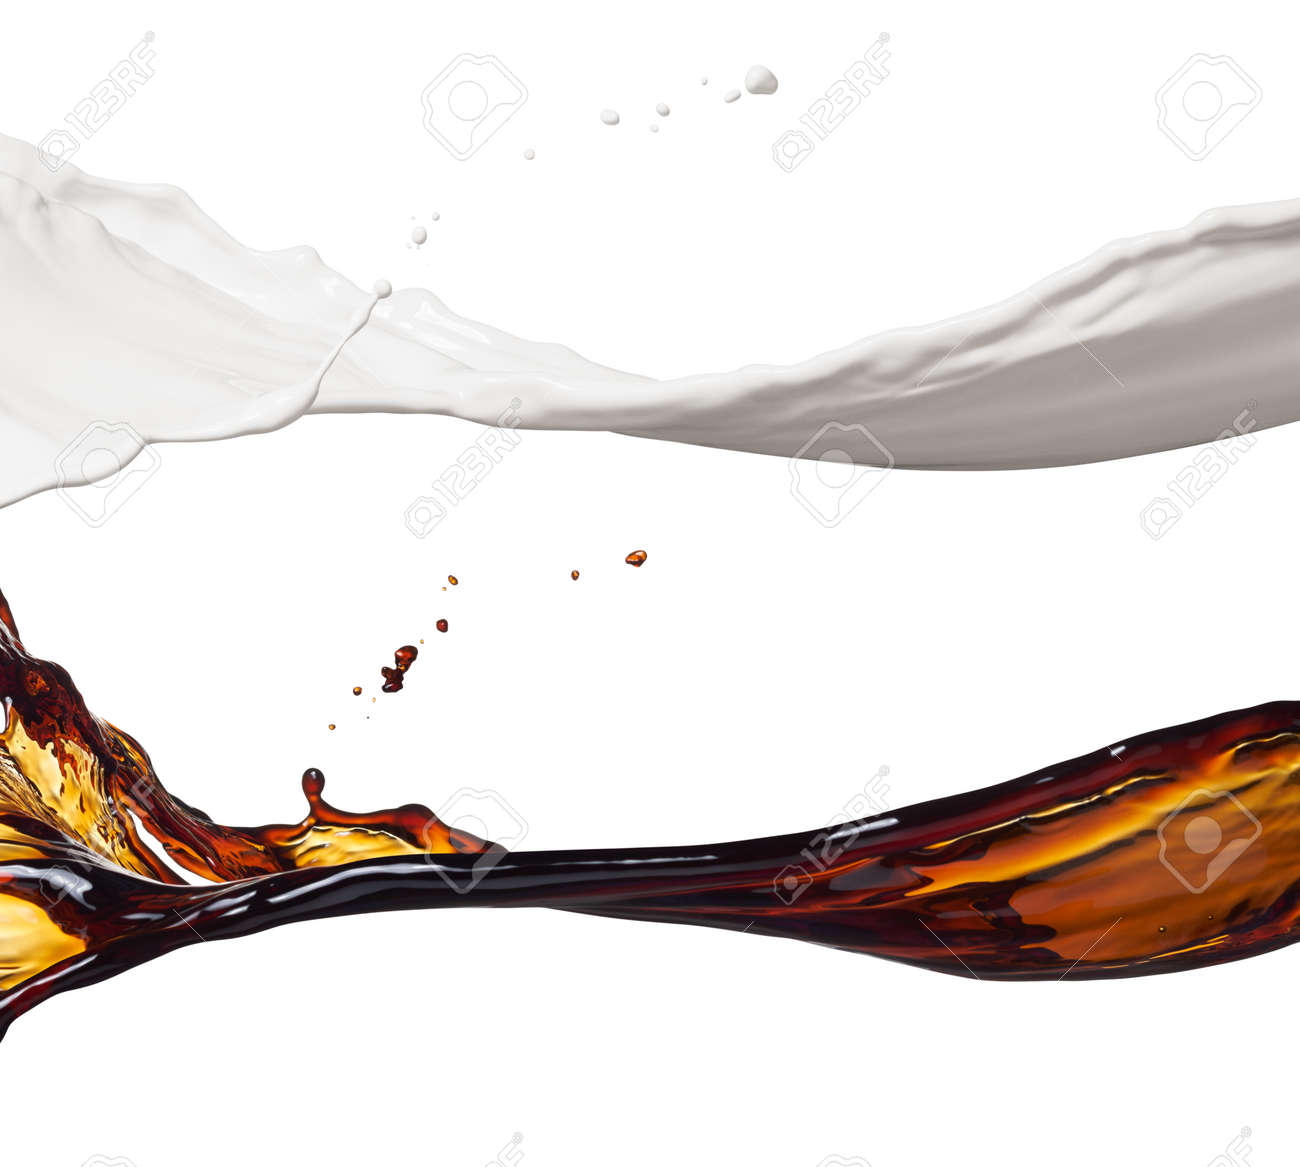 milk and coffee splashes isolated on white - 46643238